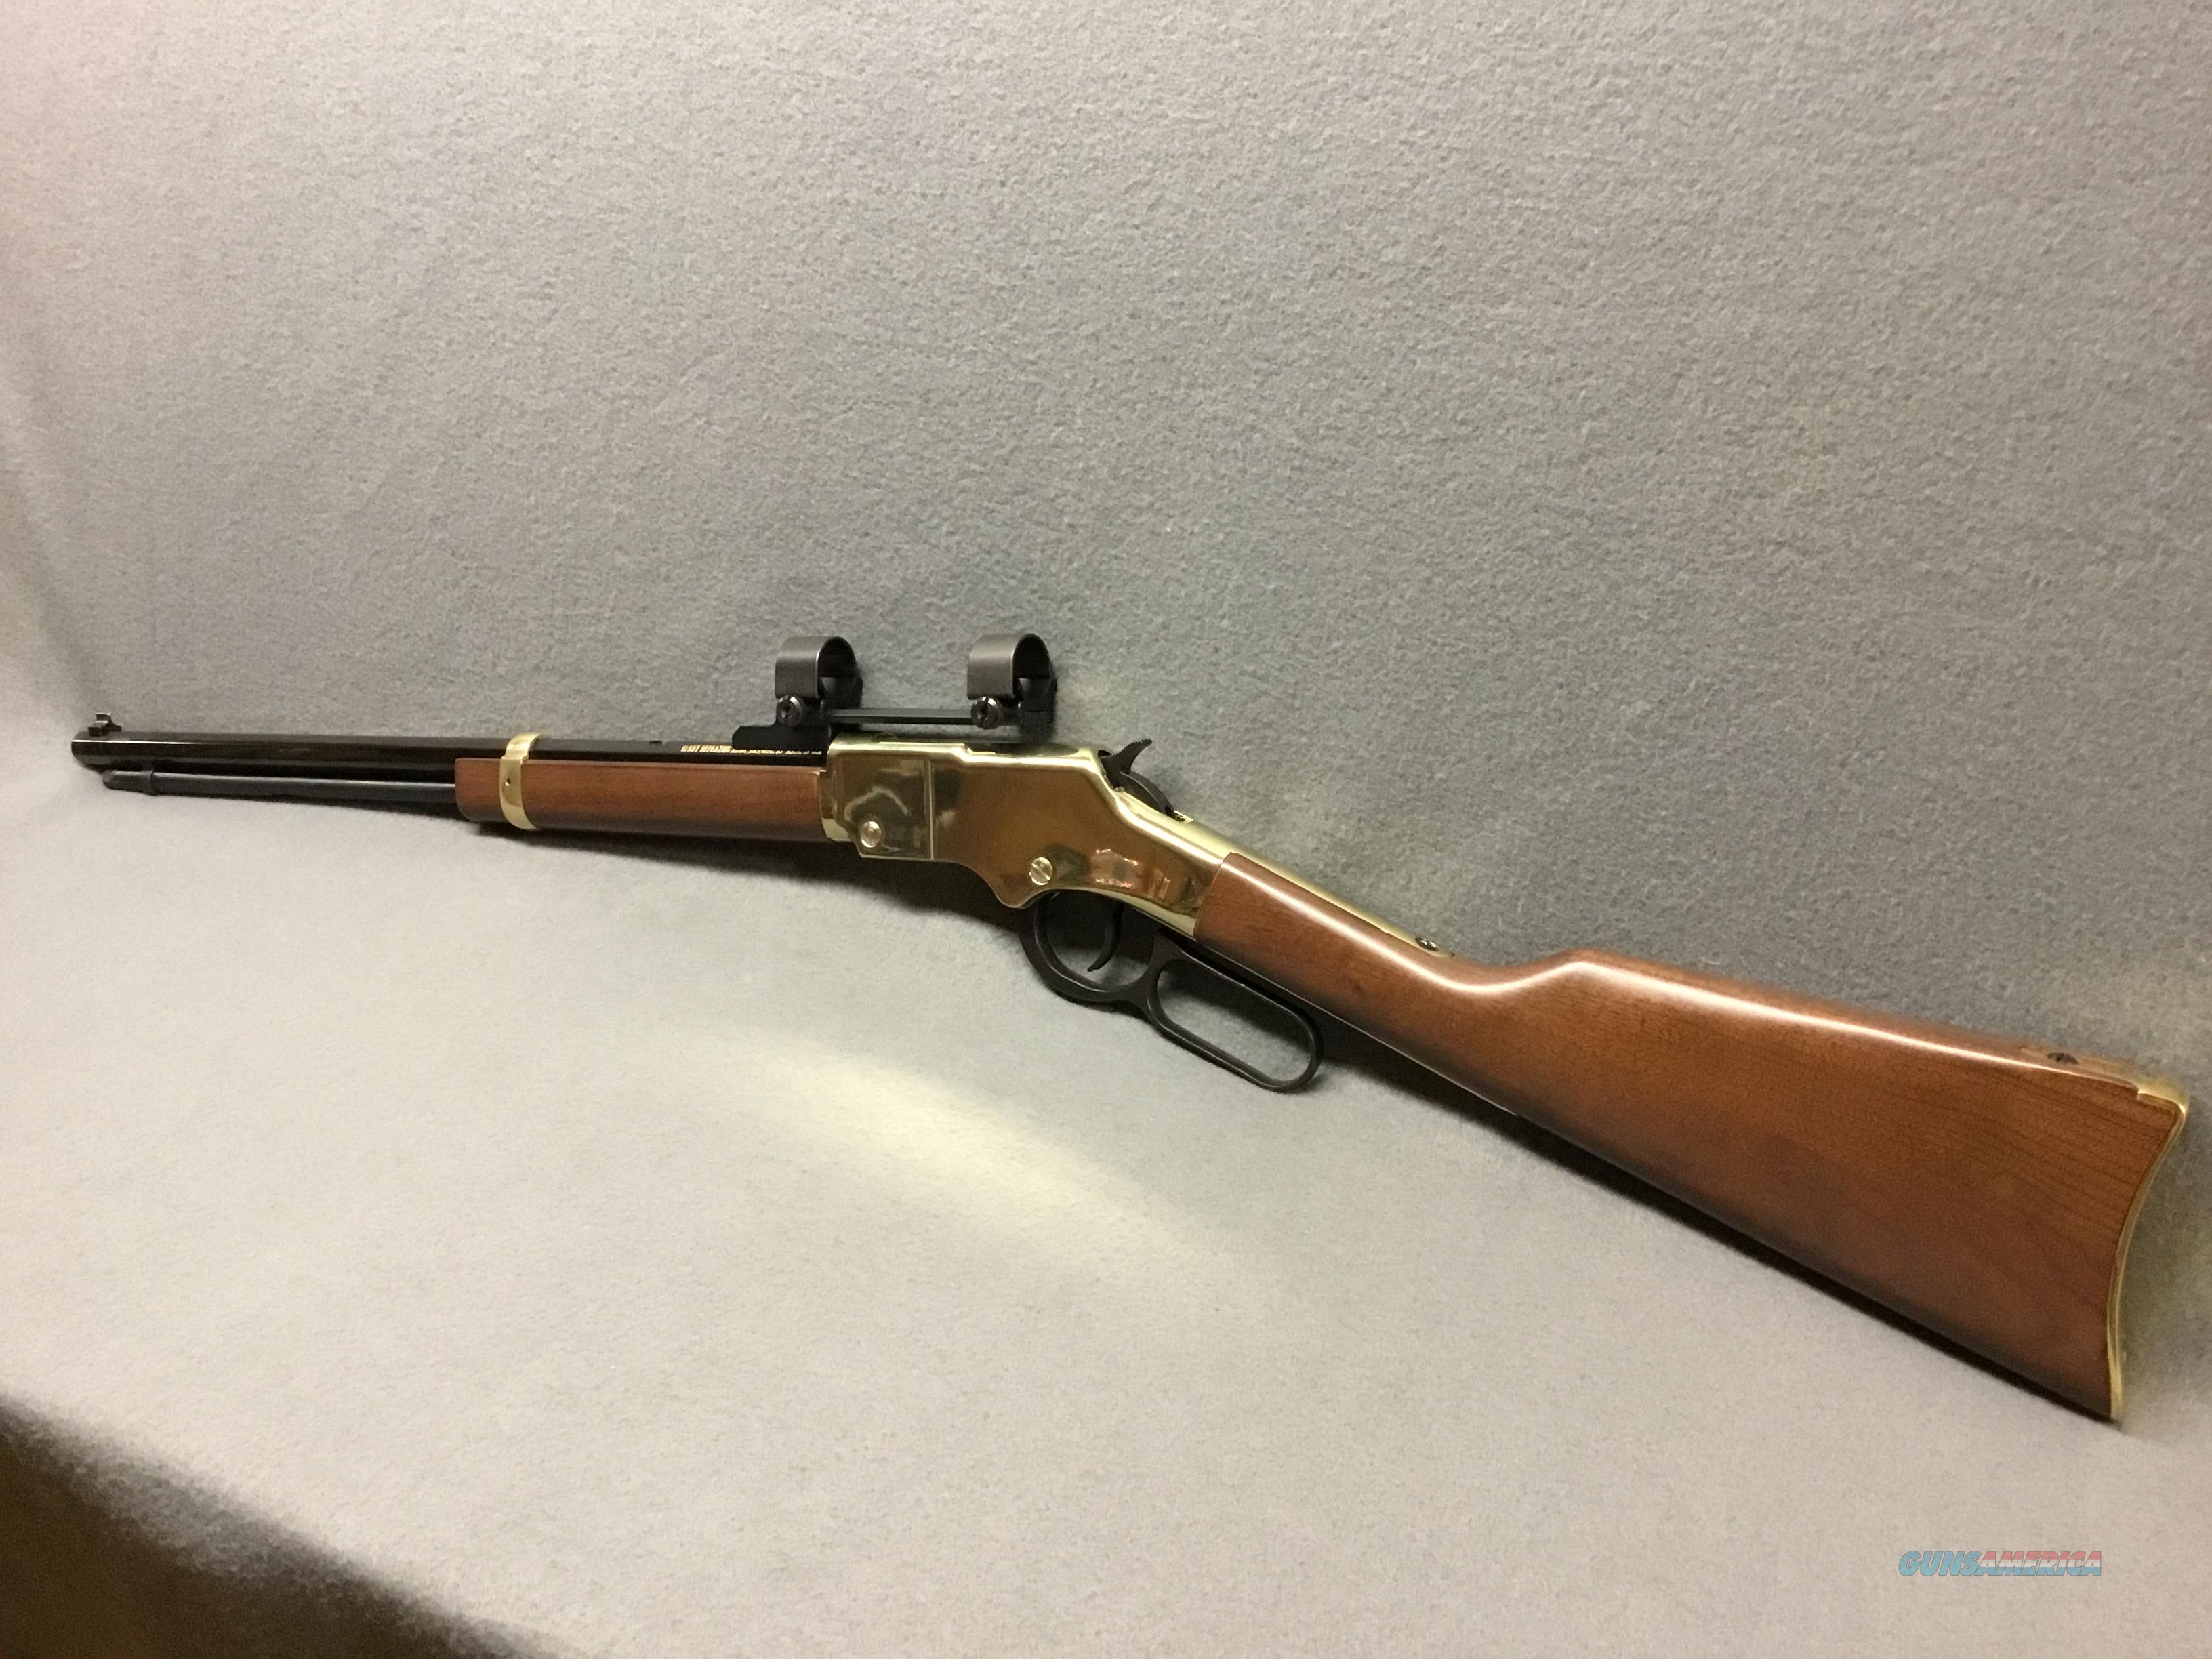 HENRY  GOLDEN BOY    LIKE NEW    WITH  RINGS AND BASES  Guns > Rifles > Henry Rifles - Replica